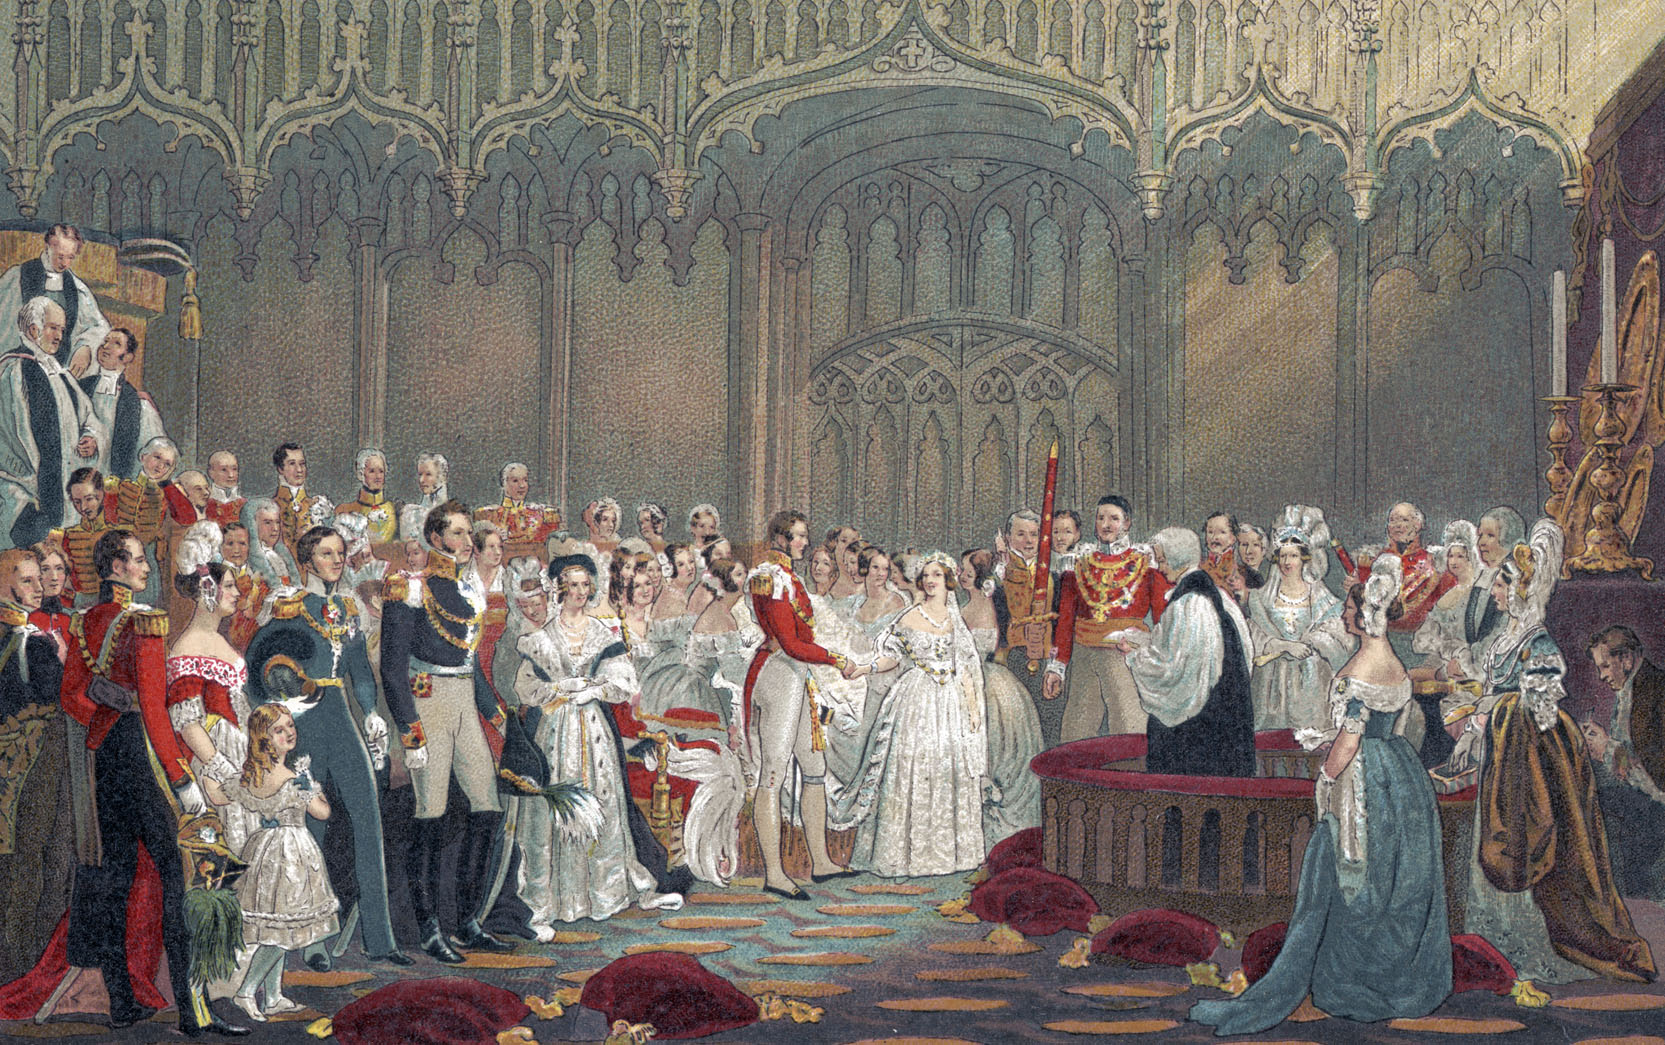 Queen Victoria and Prince Albert Wedding Illustration